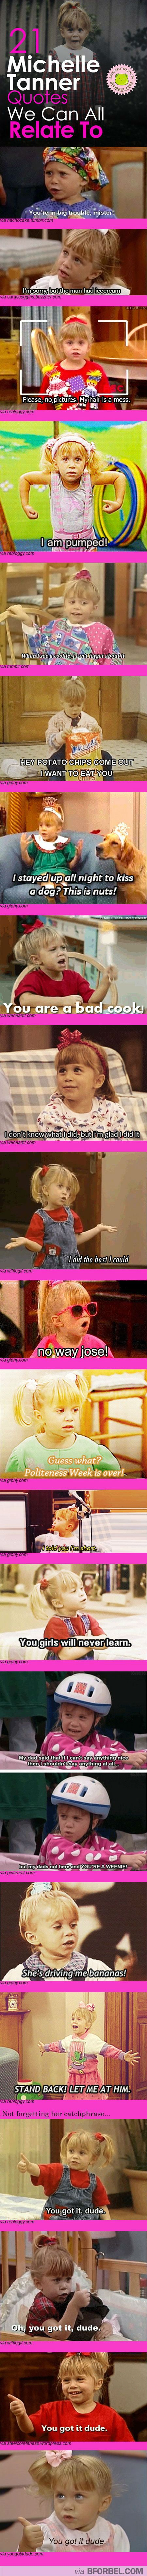 21 Michelle Tanner Quotes We Can All Relate To…Oh yea you got it dude